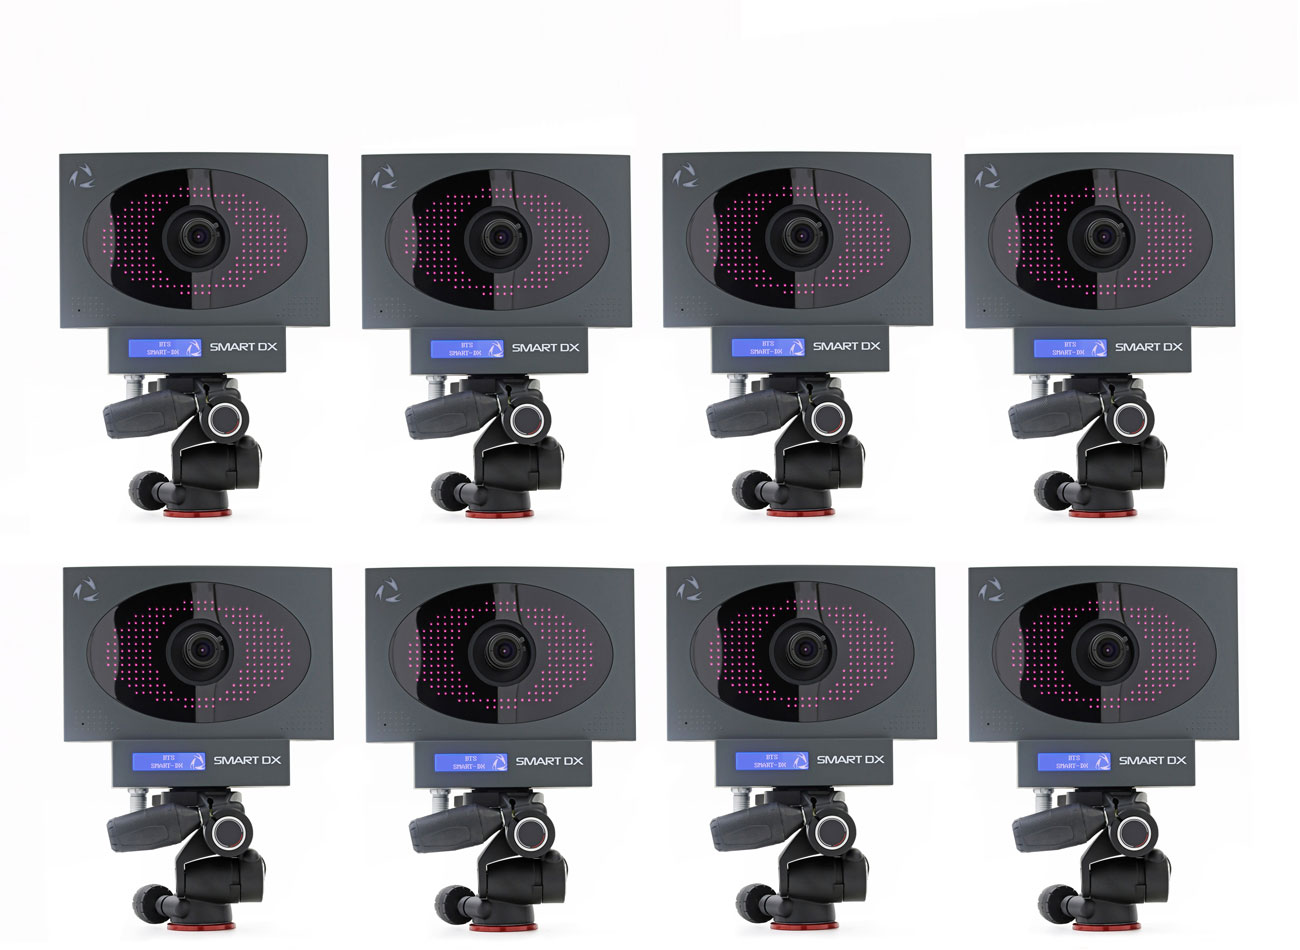 8 infrared cameras SMART-DX | BTS GAITLAB components